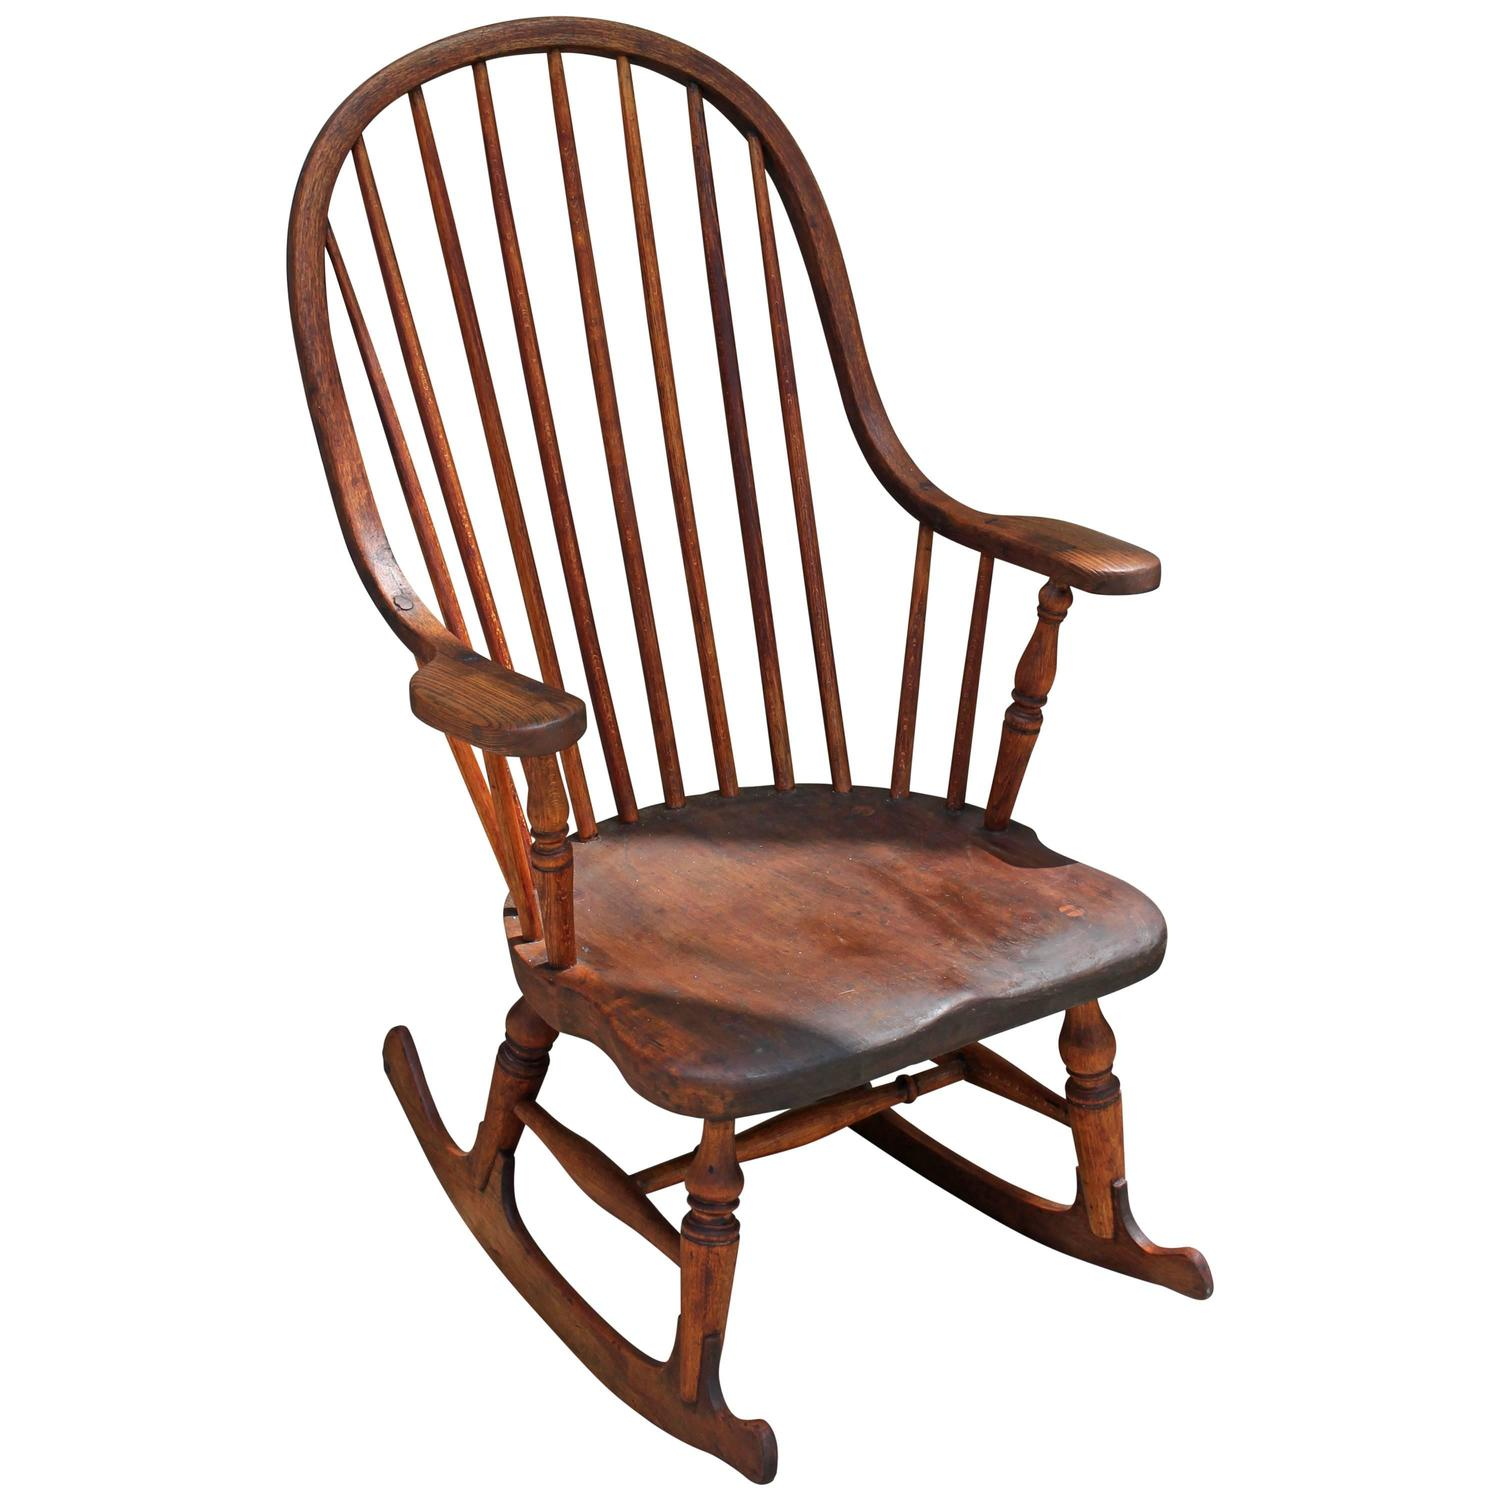 Bentwood rocking chairs for sale - Bentwood chairs ikea ...